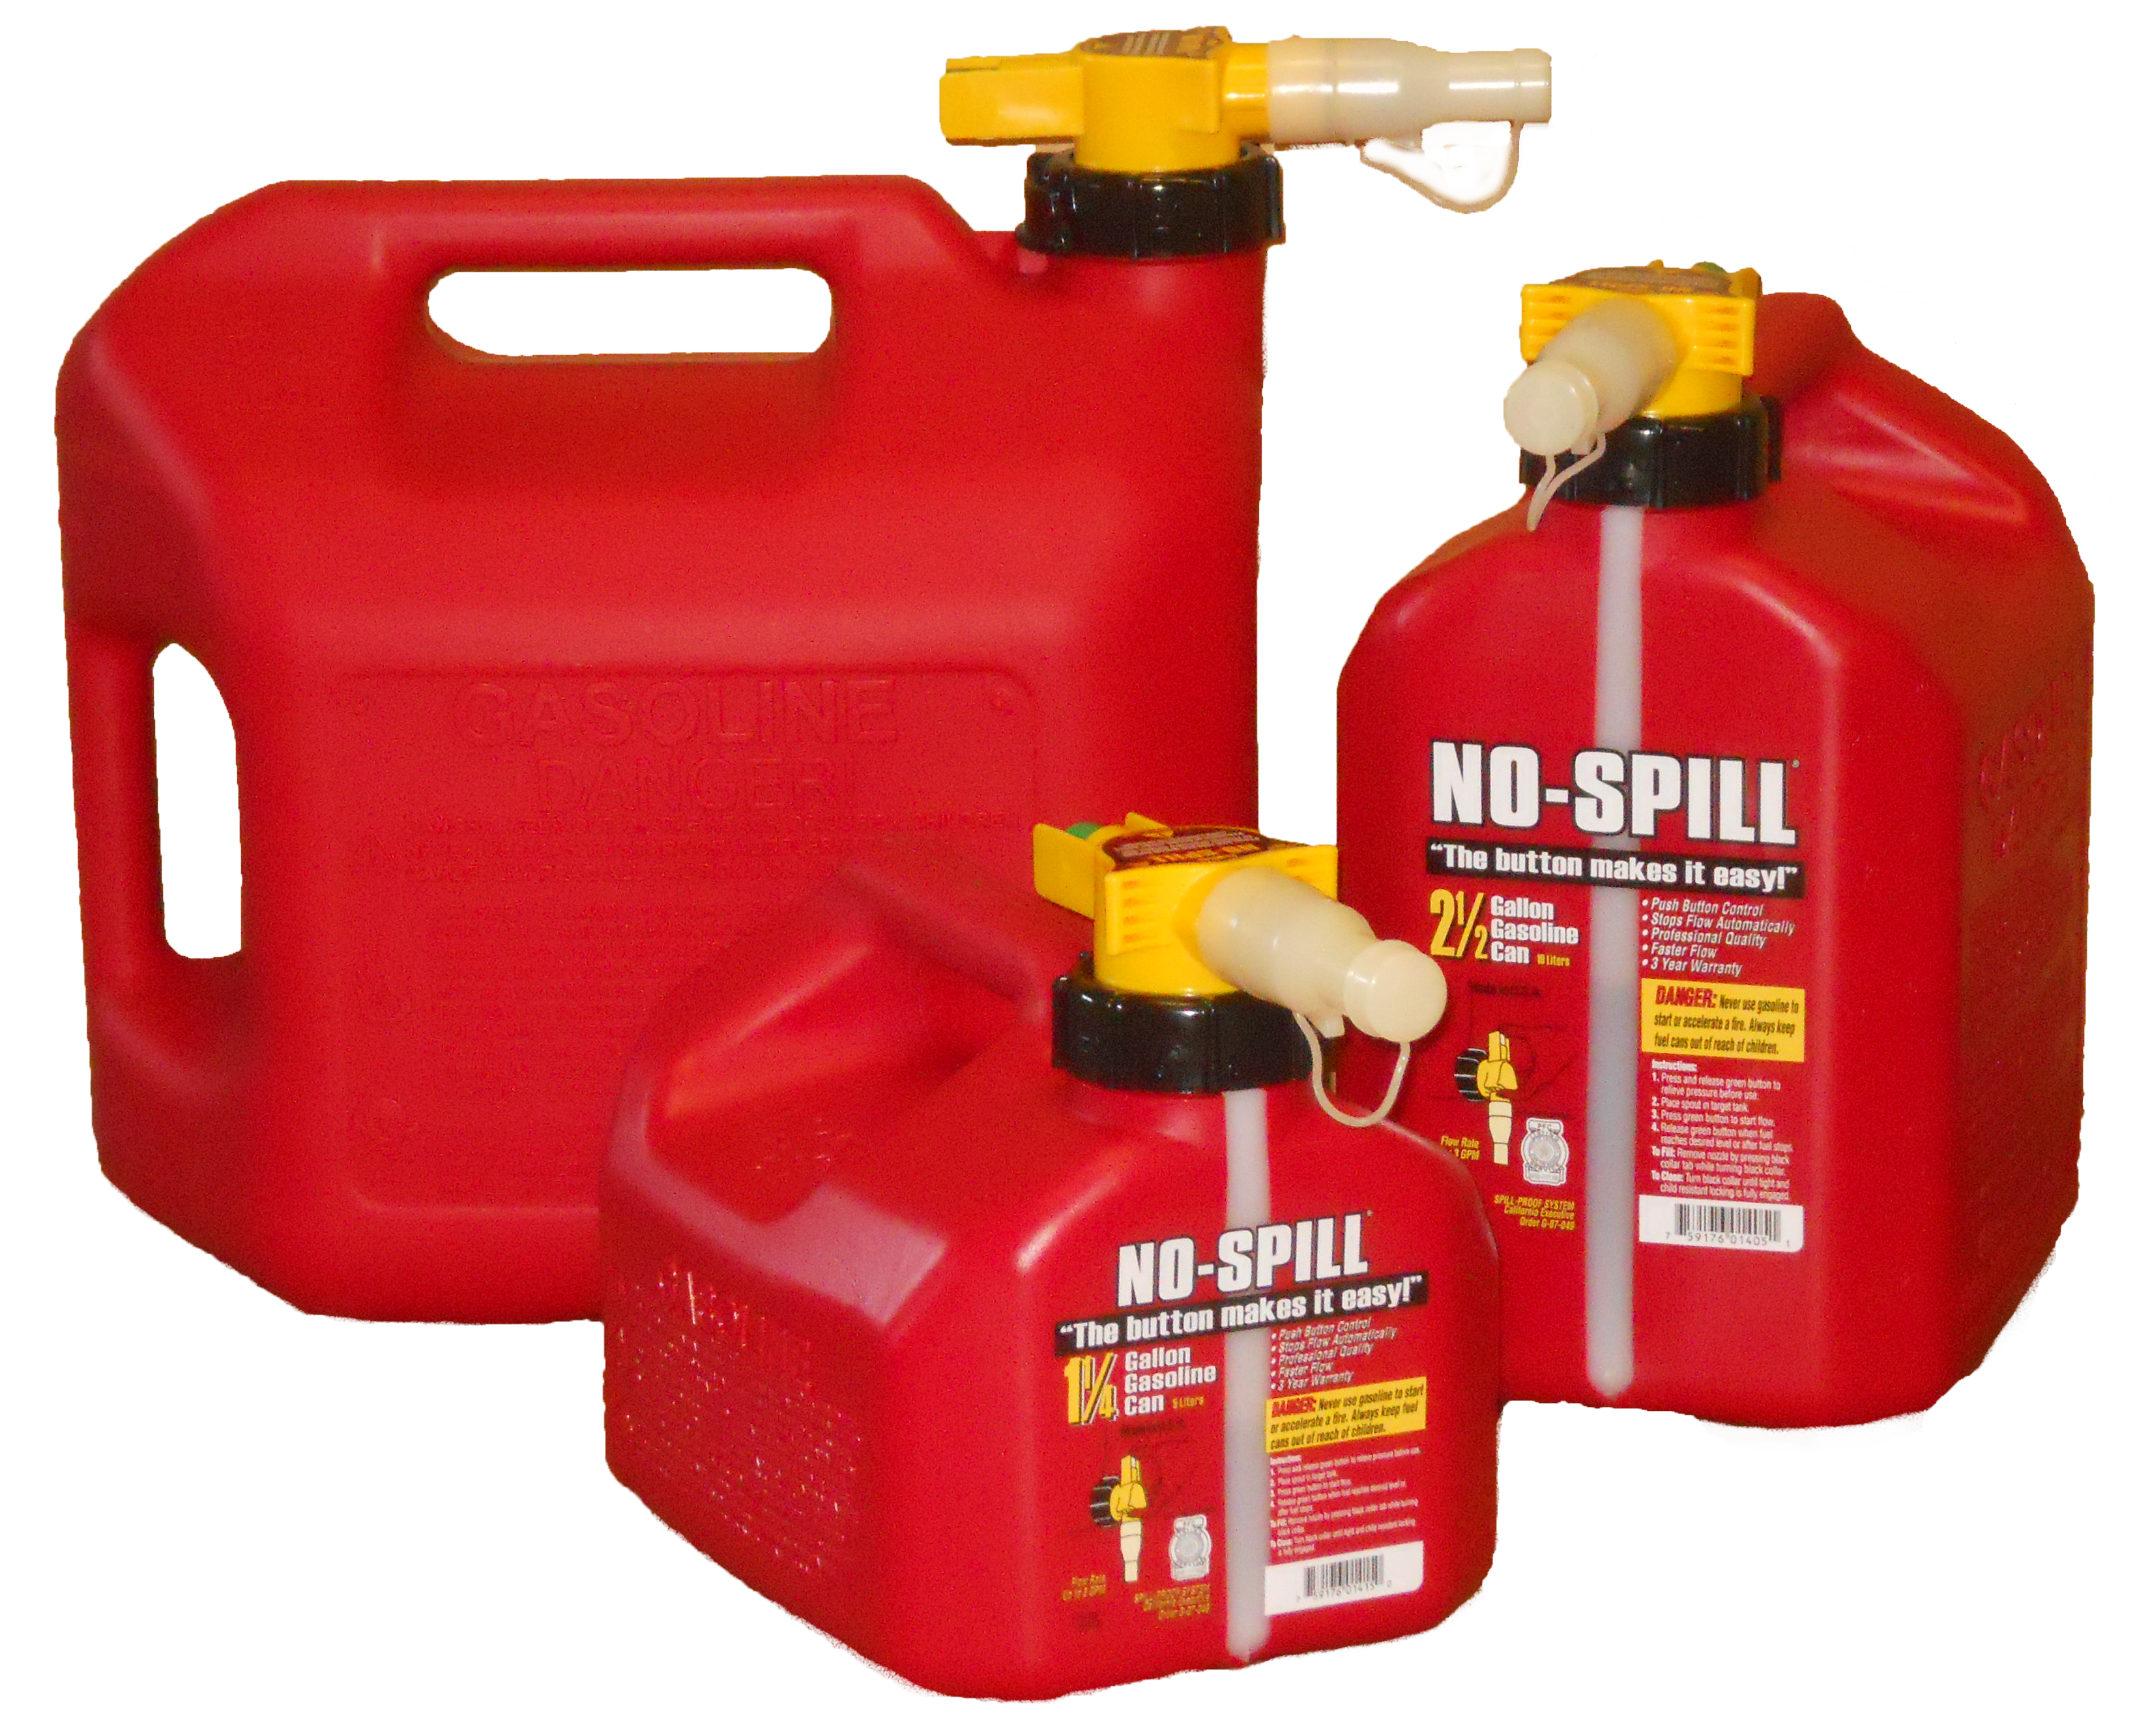 Best Gas Can >> Best Gas Can The No Spill Gas Can Hate Your Gas Can Kansas